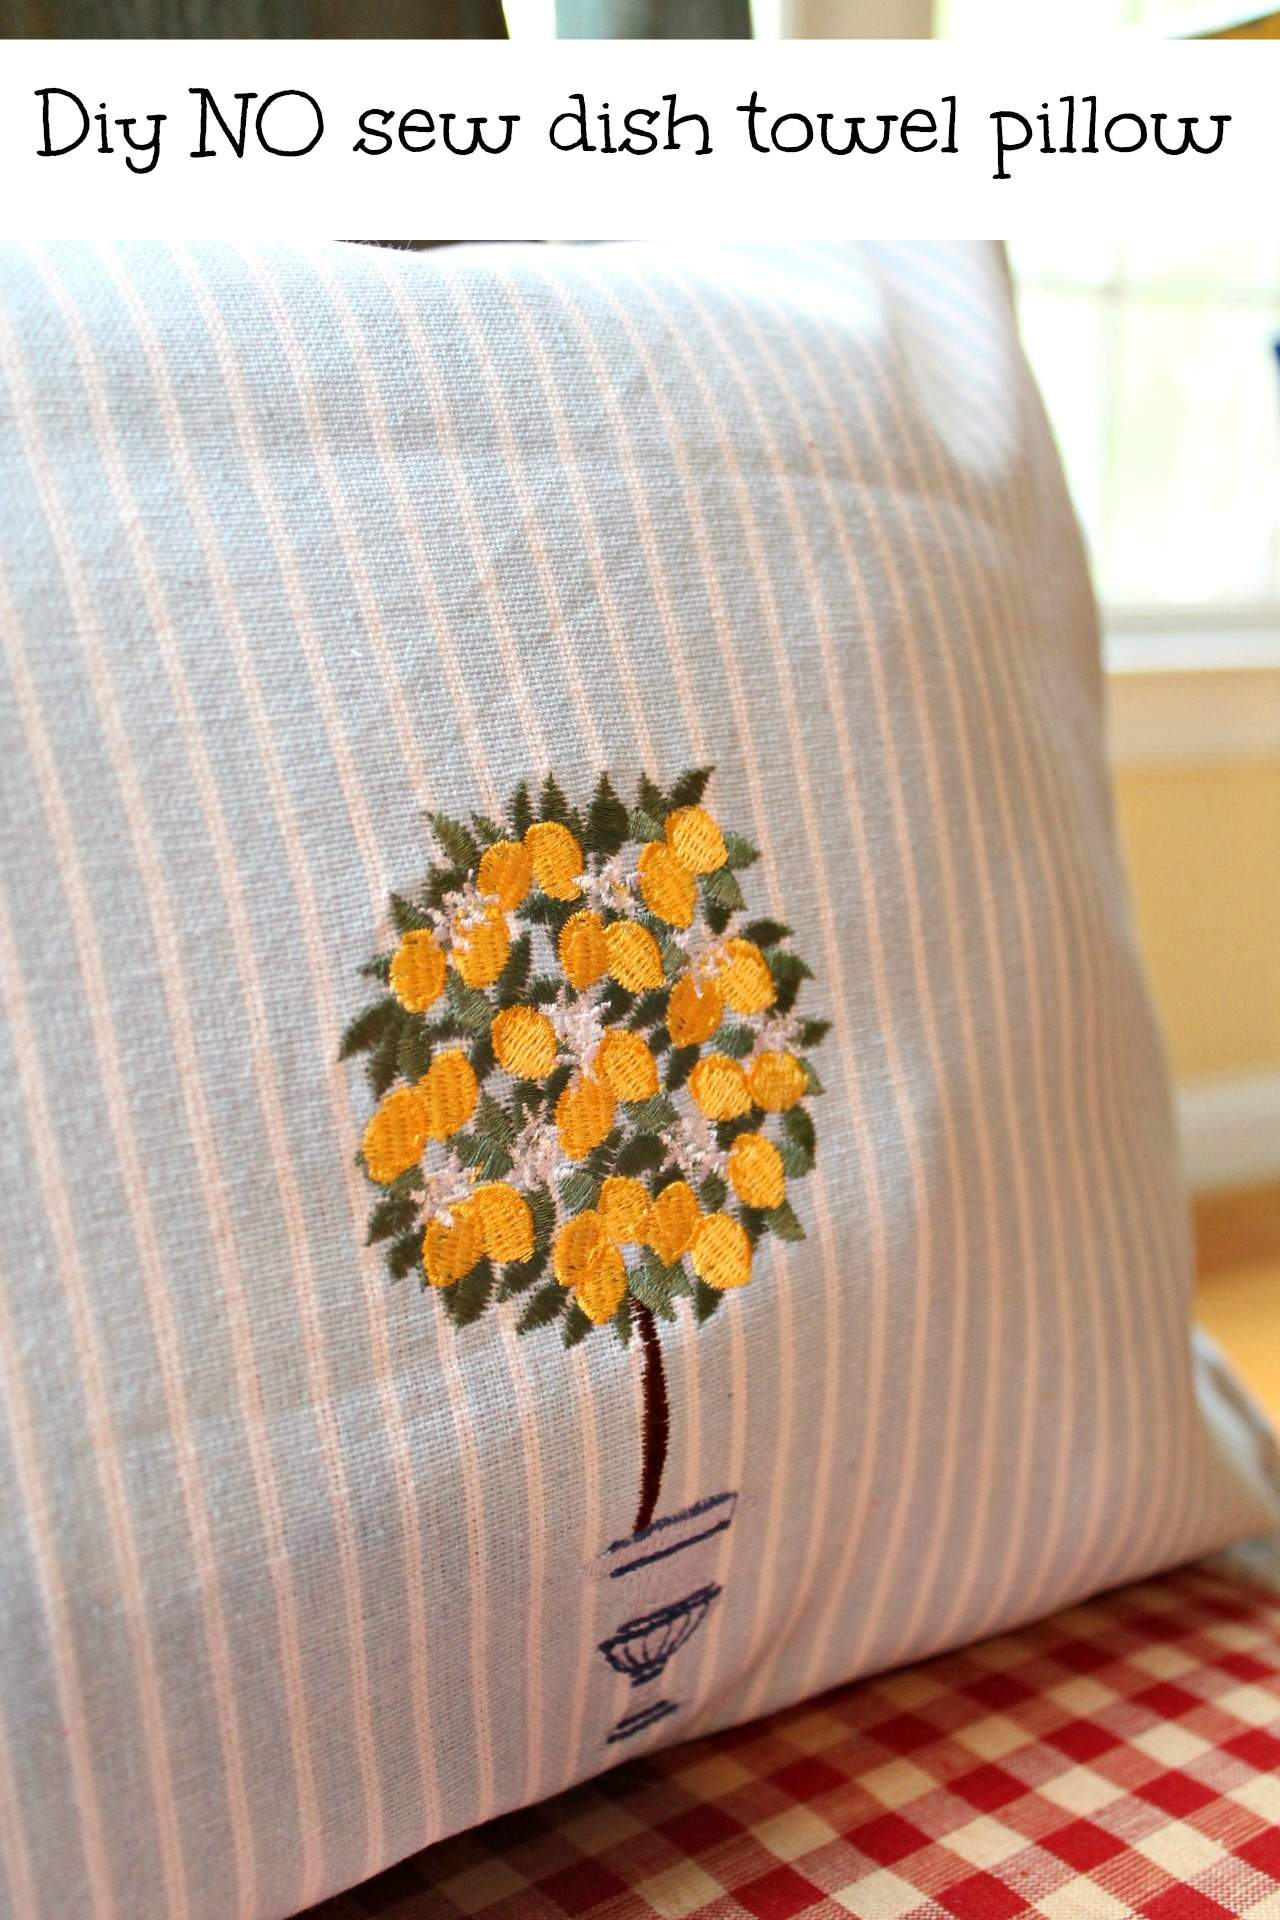 How To Make A Dish Towel Pillow For 2 00 Debbiedoos